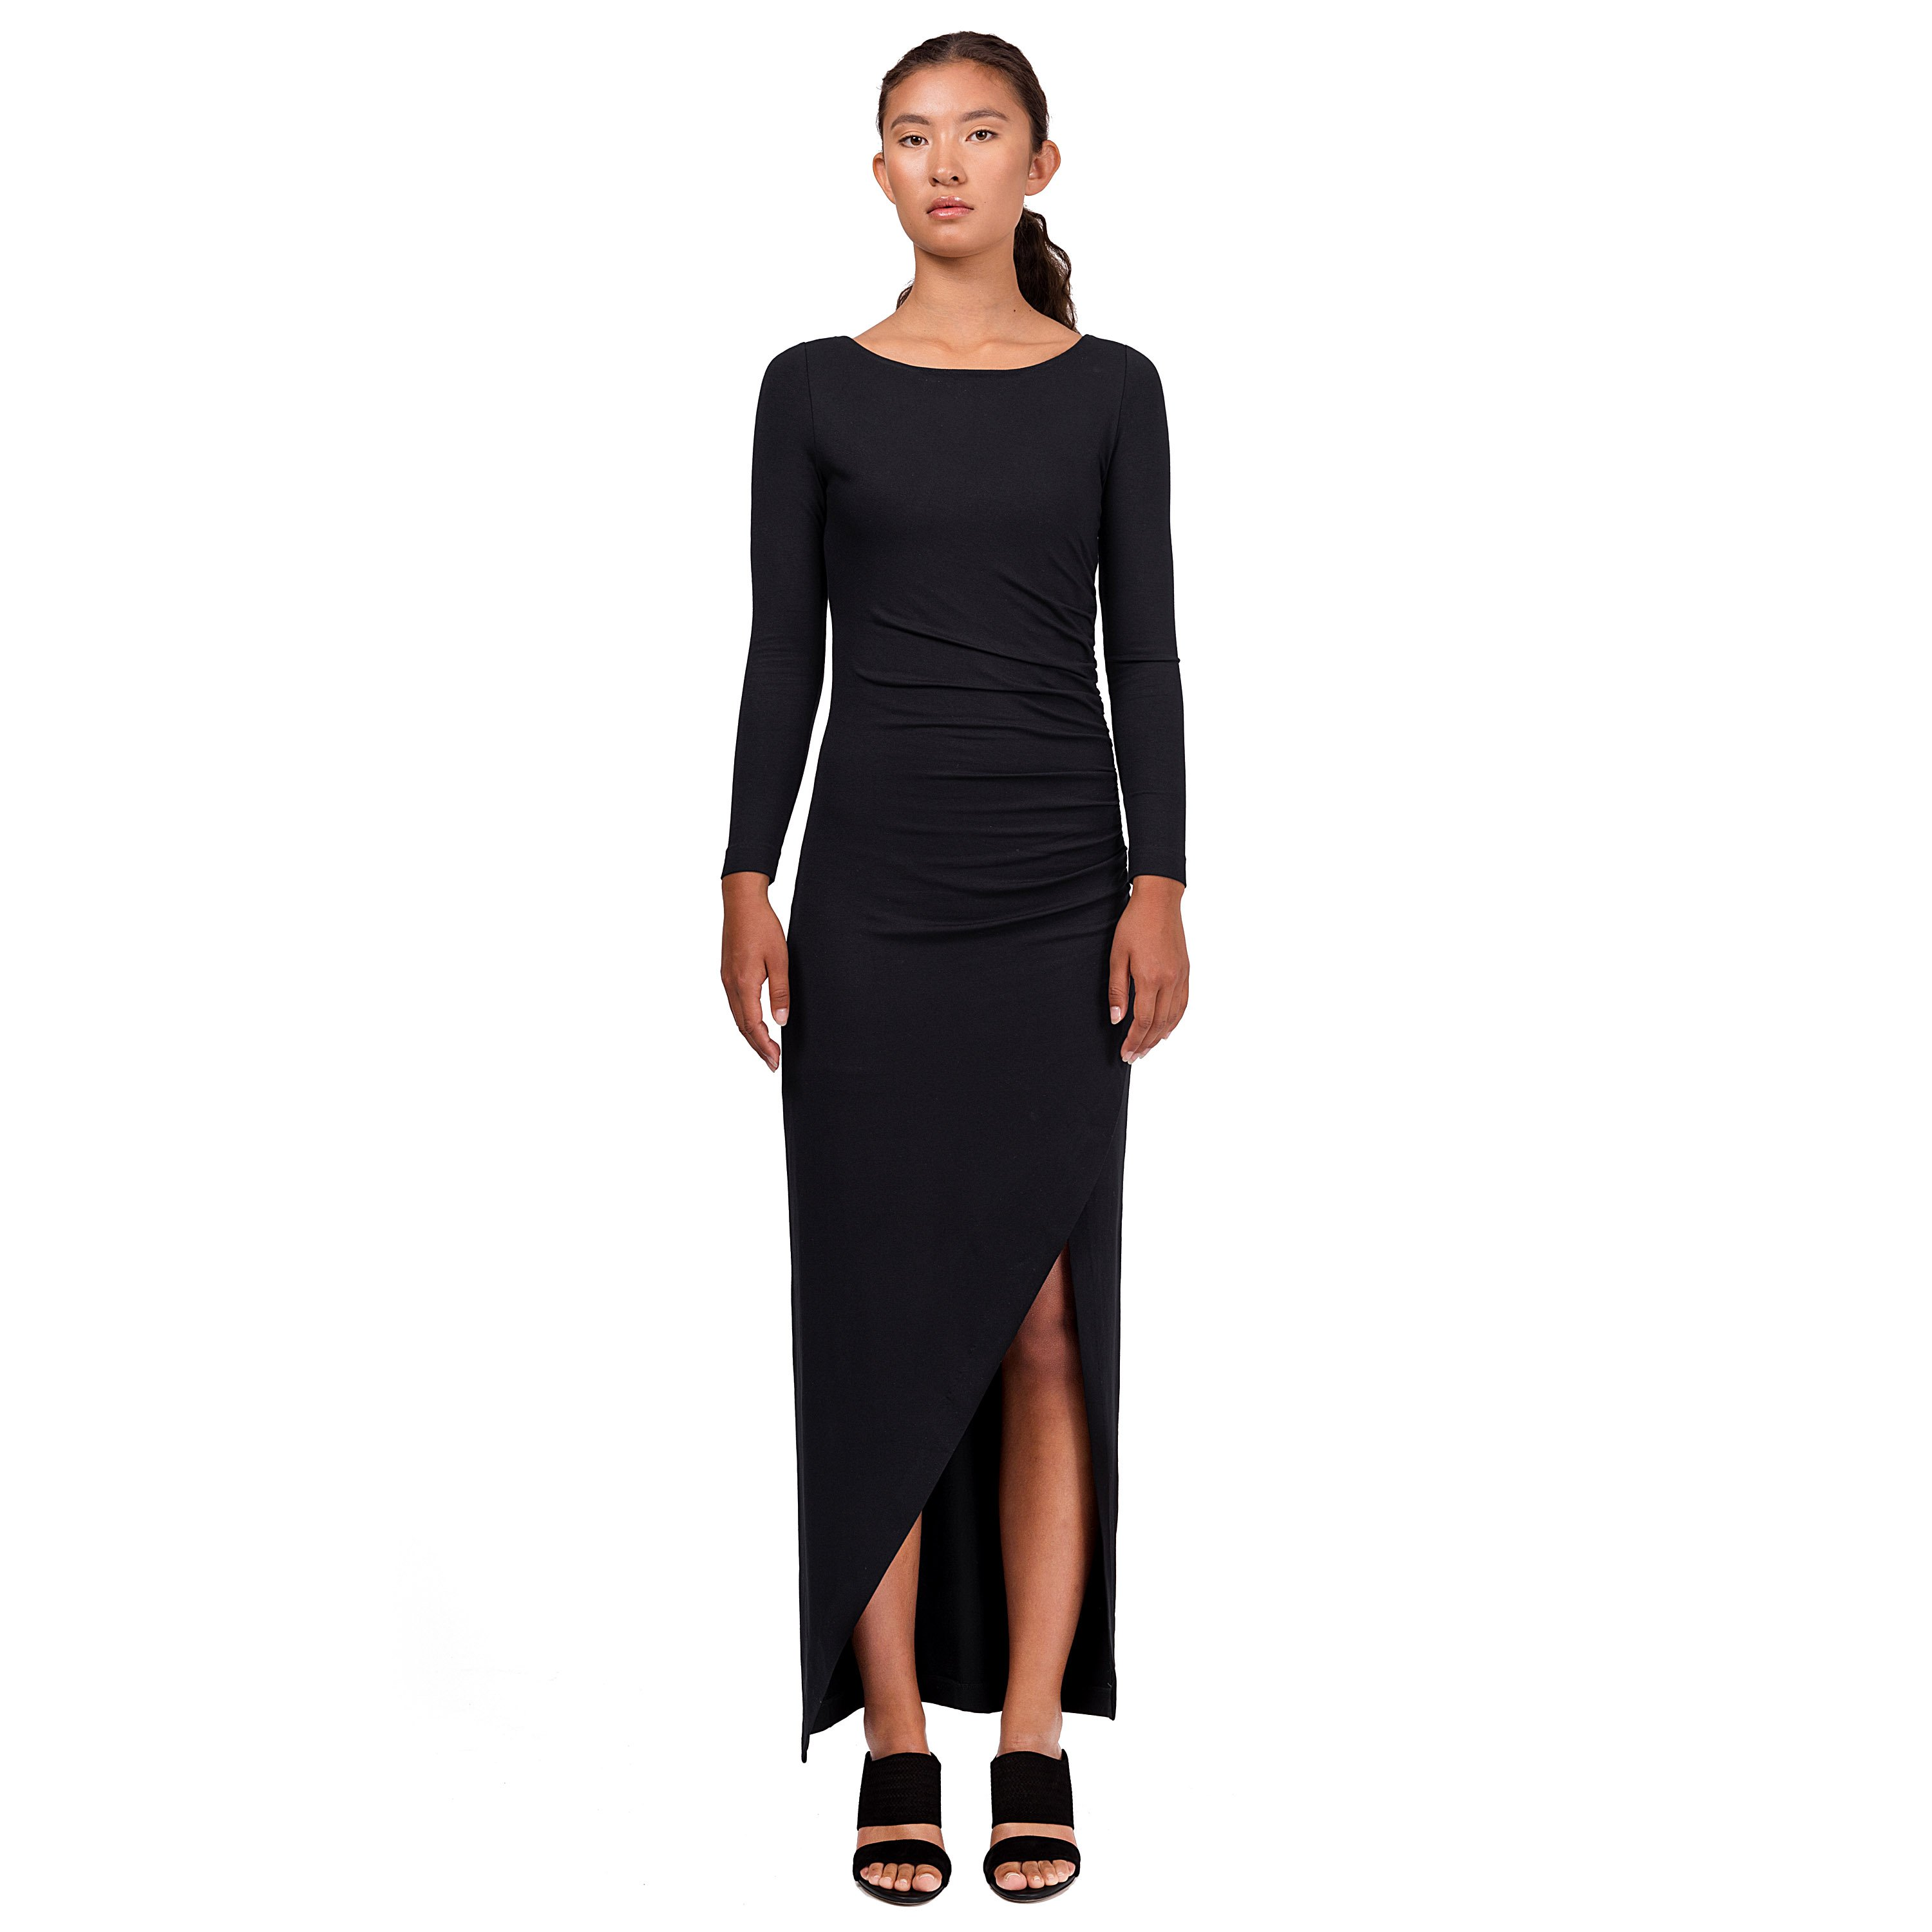 618eb9eaf509 ARIANA Dress in black - Residus Official - Worldwide Shipping